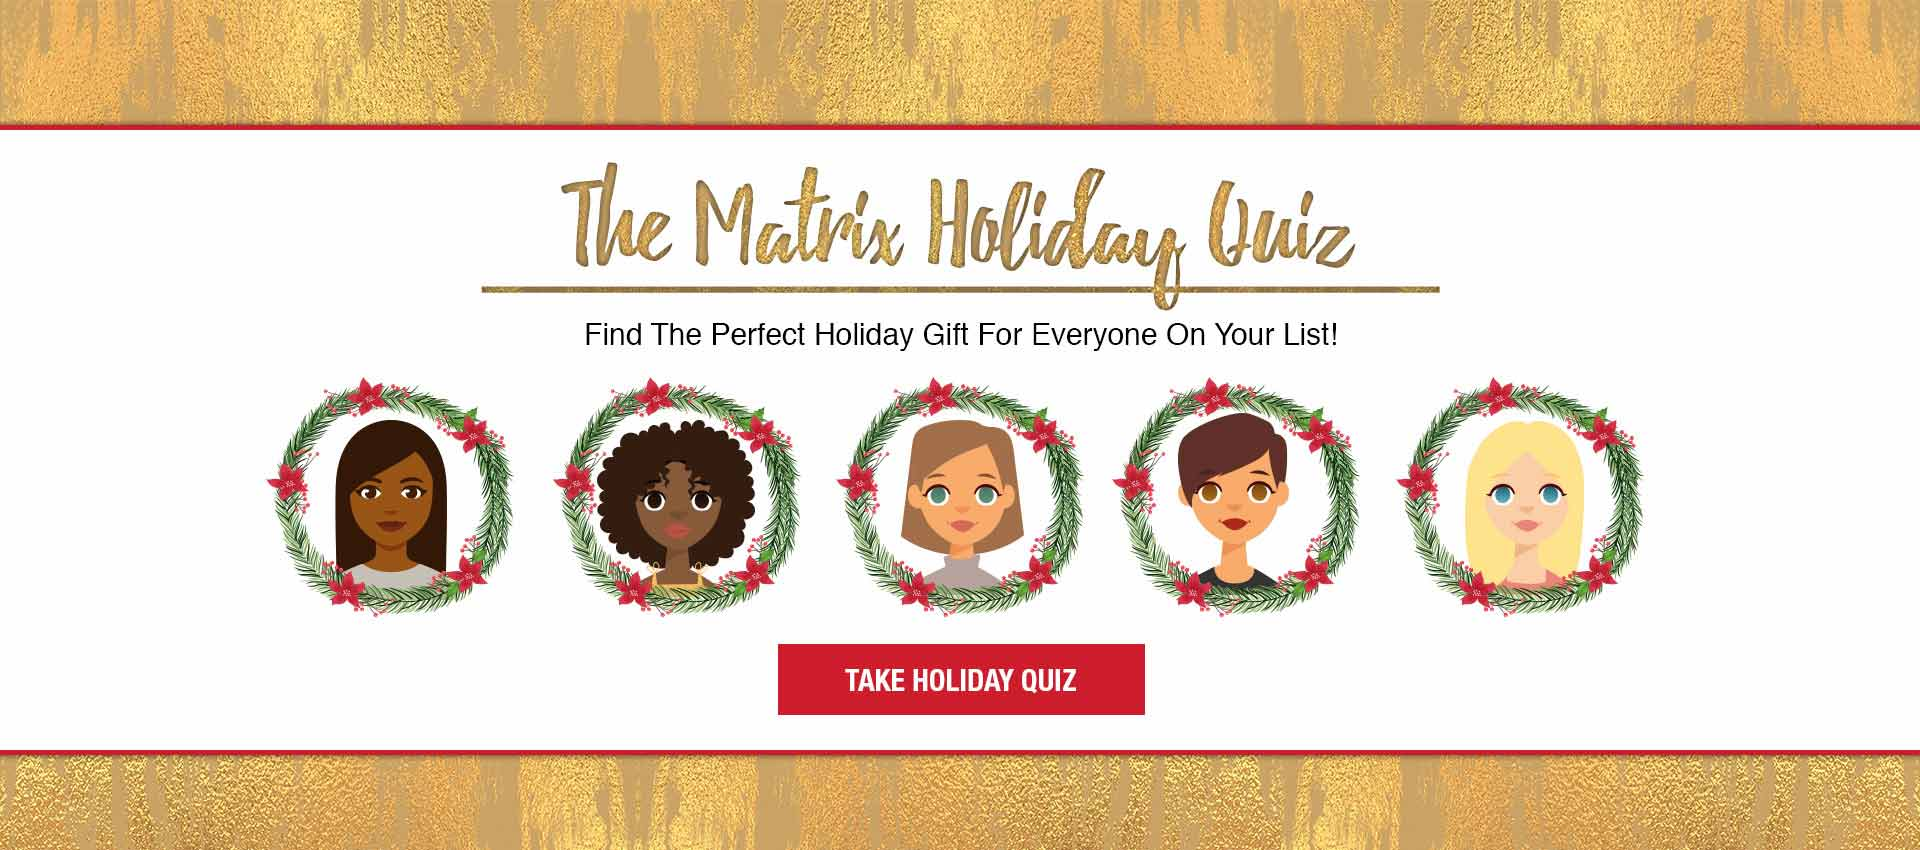 Holiday-Quiz-Desktop-HP-Banner-MC.jpg